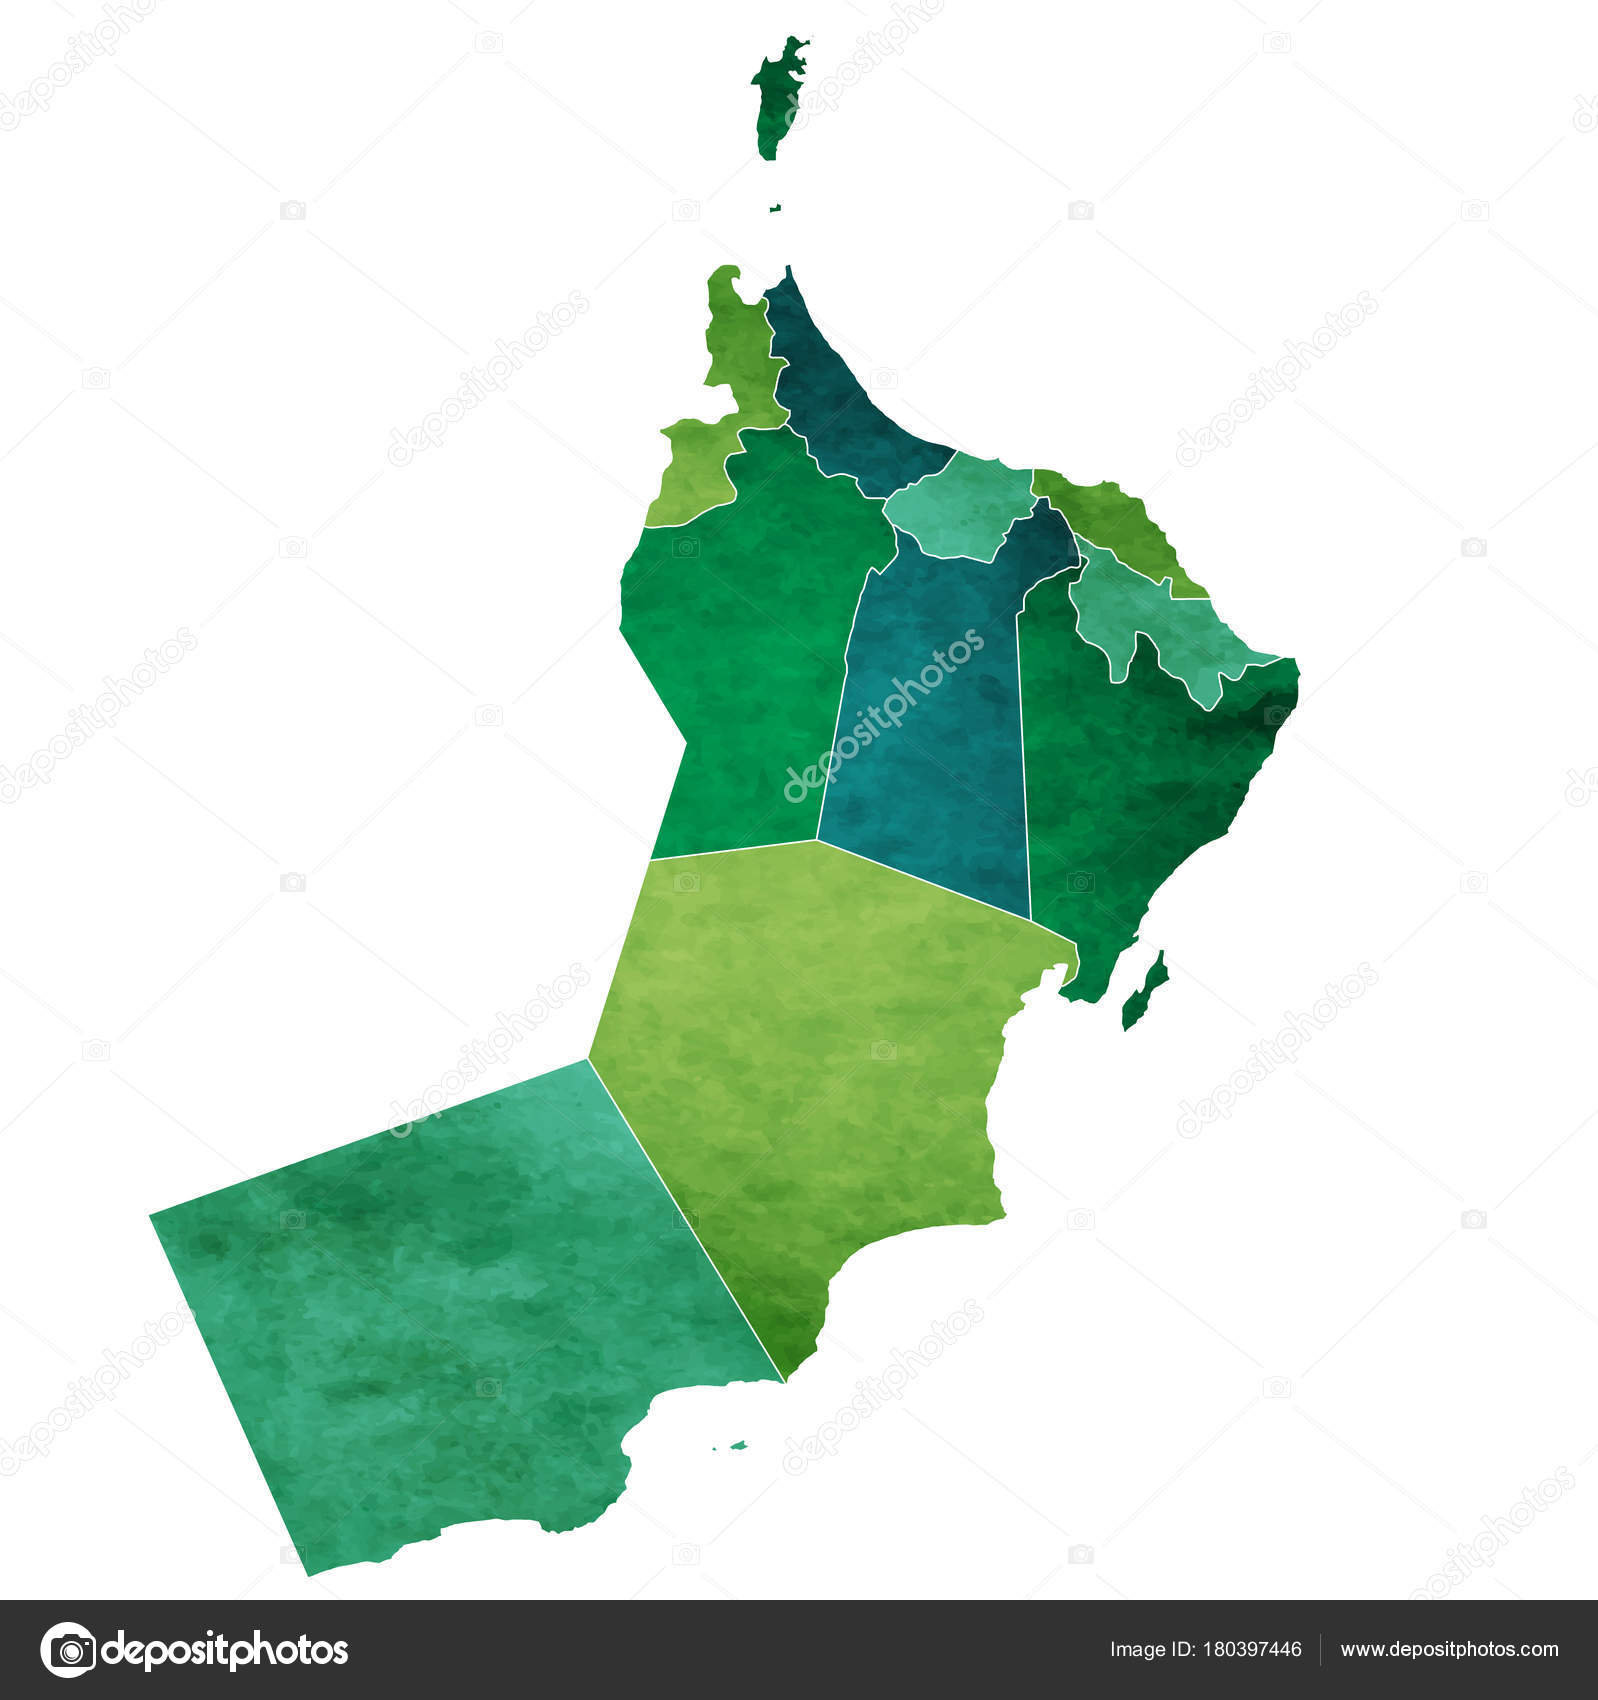 Oman world map country icon stock vector jboy24 180397446 oman world map country icon stock vector gumiabroncs Gallery